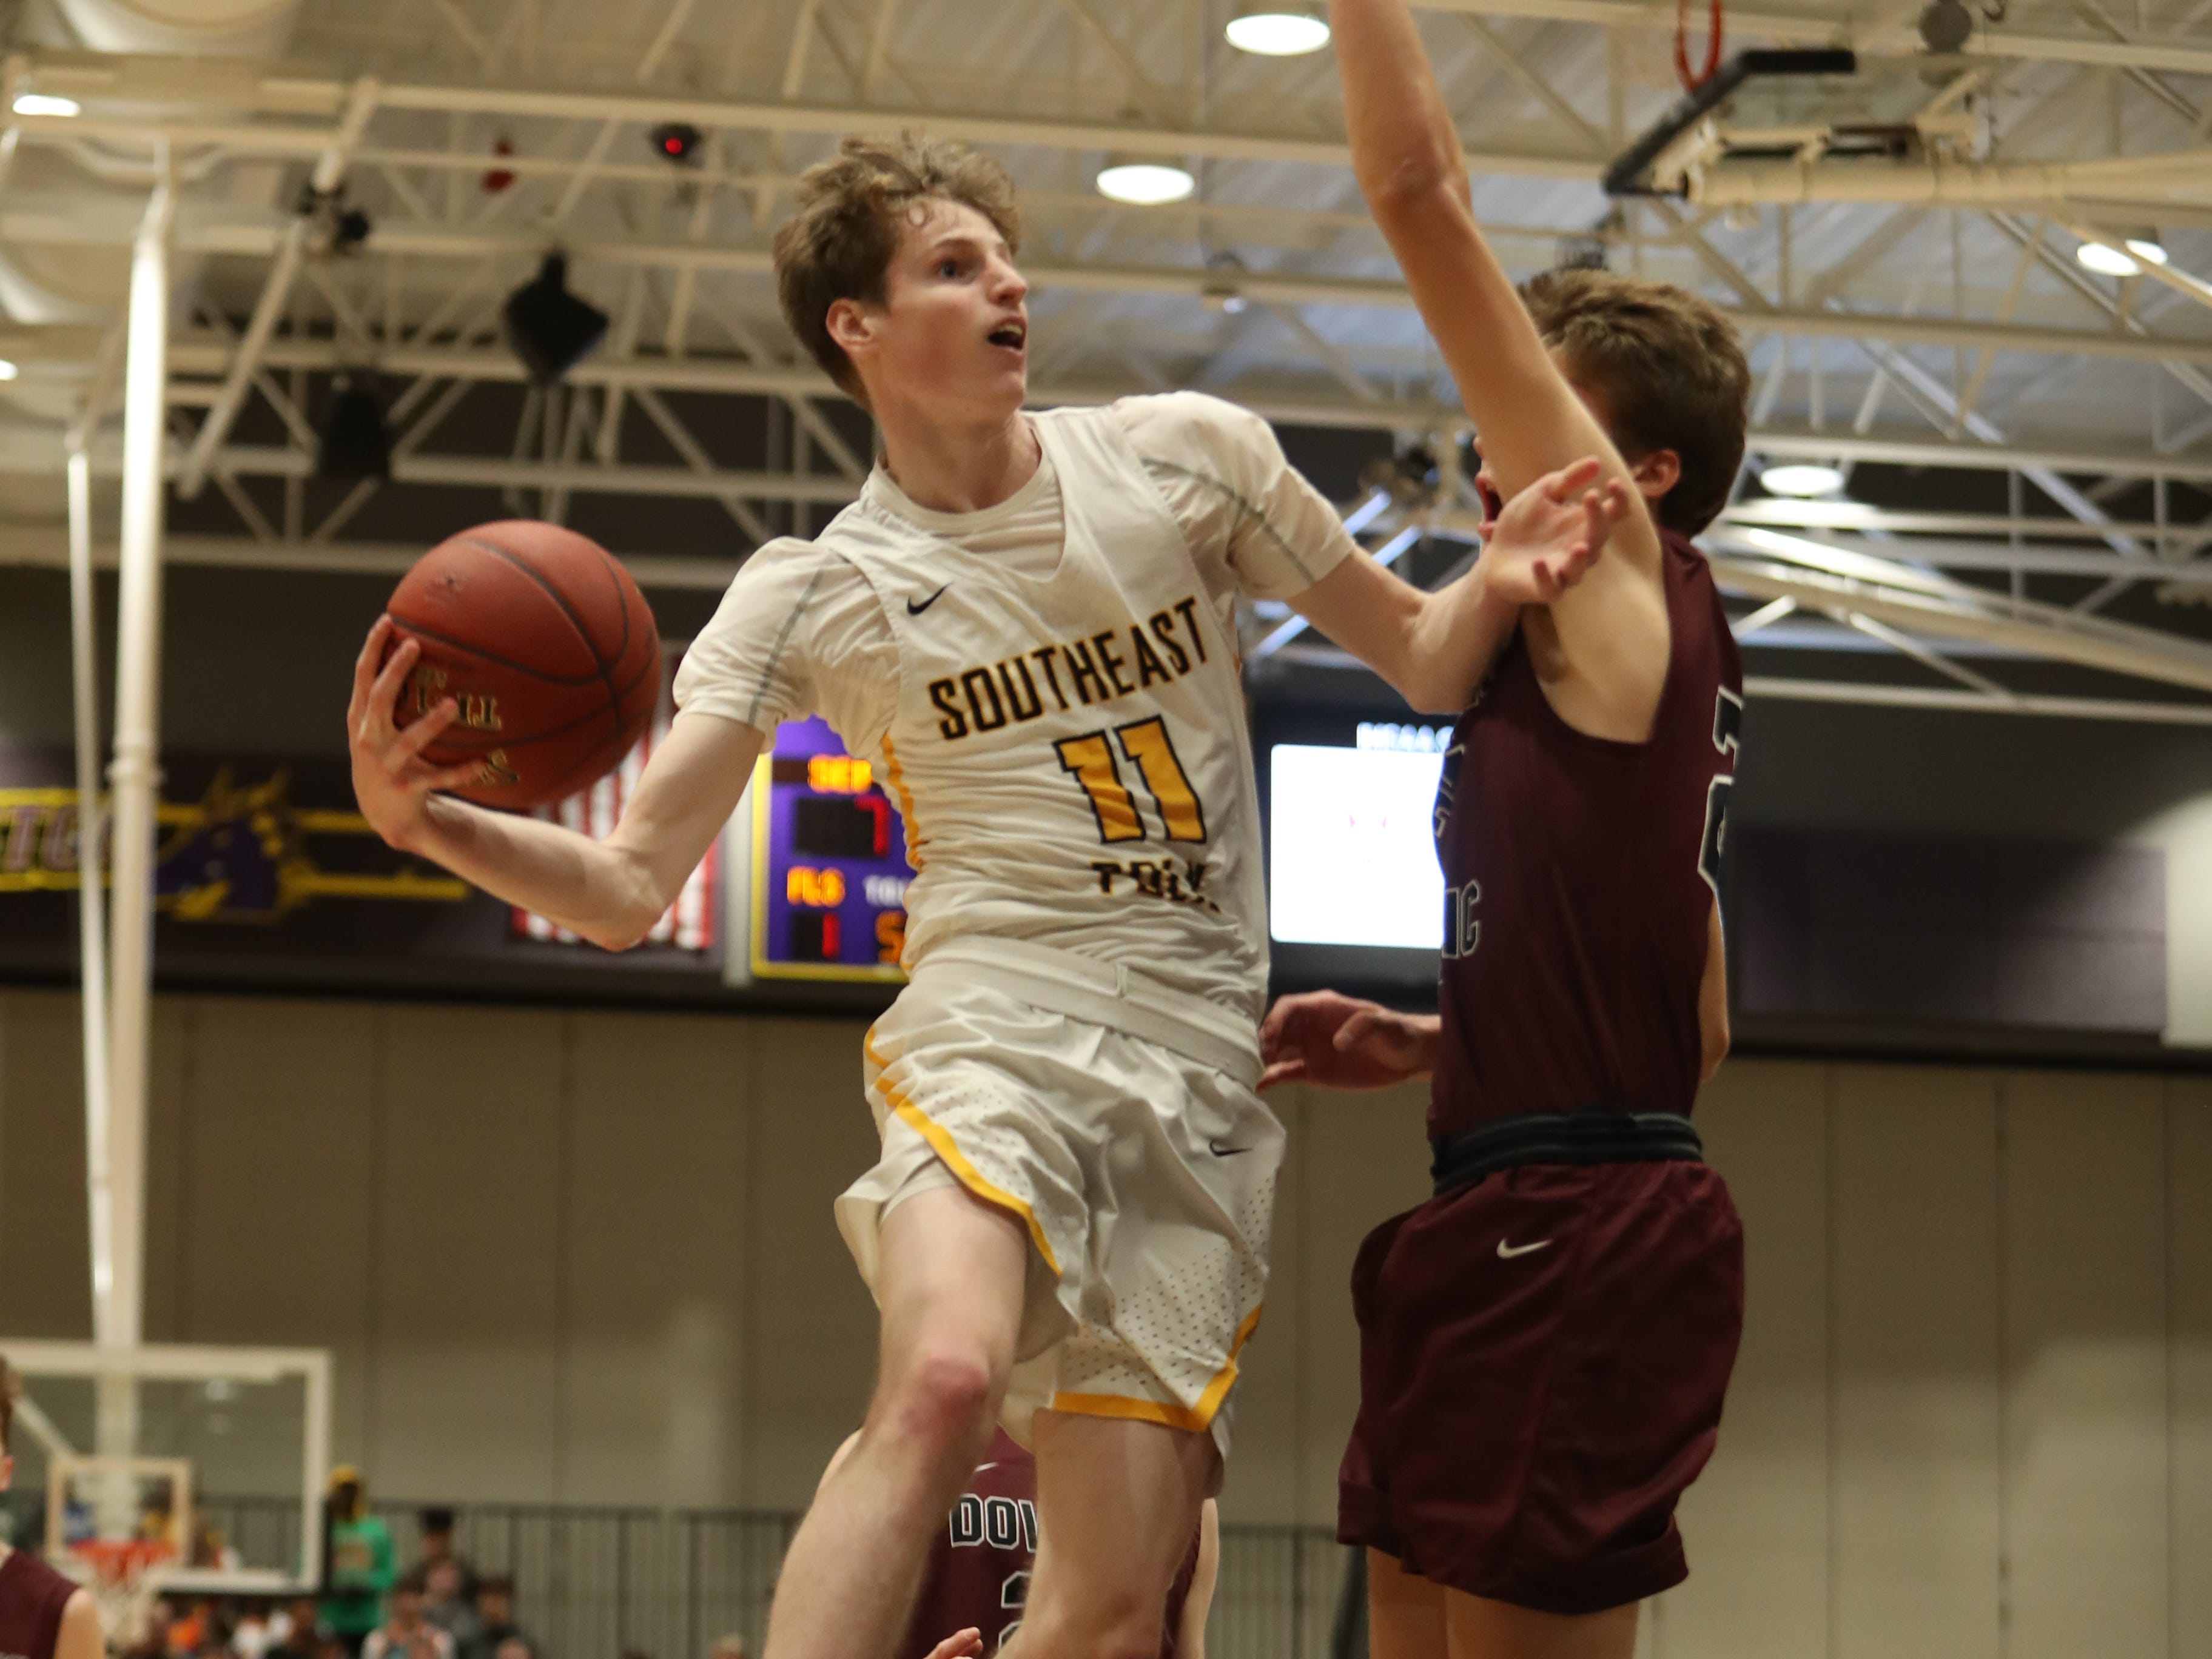 Dowling Catholic's Ryan Riggs (21) defends the shot of Southeast Polk's Sam Glenn (11)  during their game at Johnston High School in Johnston, Iowa, on Tuesday, Feb. 26, 2019. Dowling won the game 44-40 to advance to state.